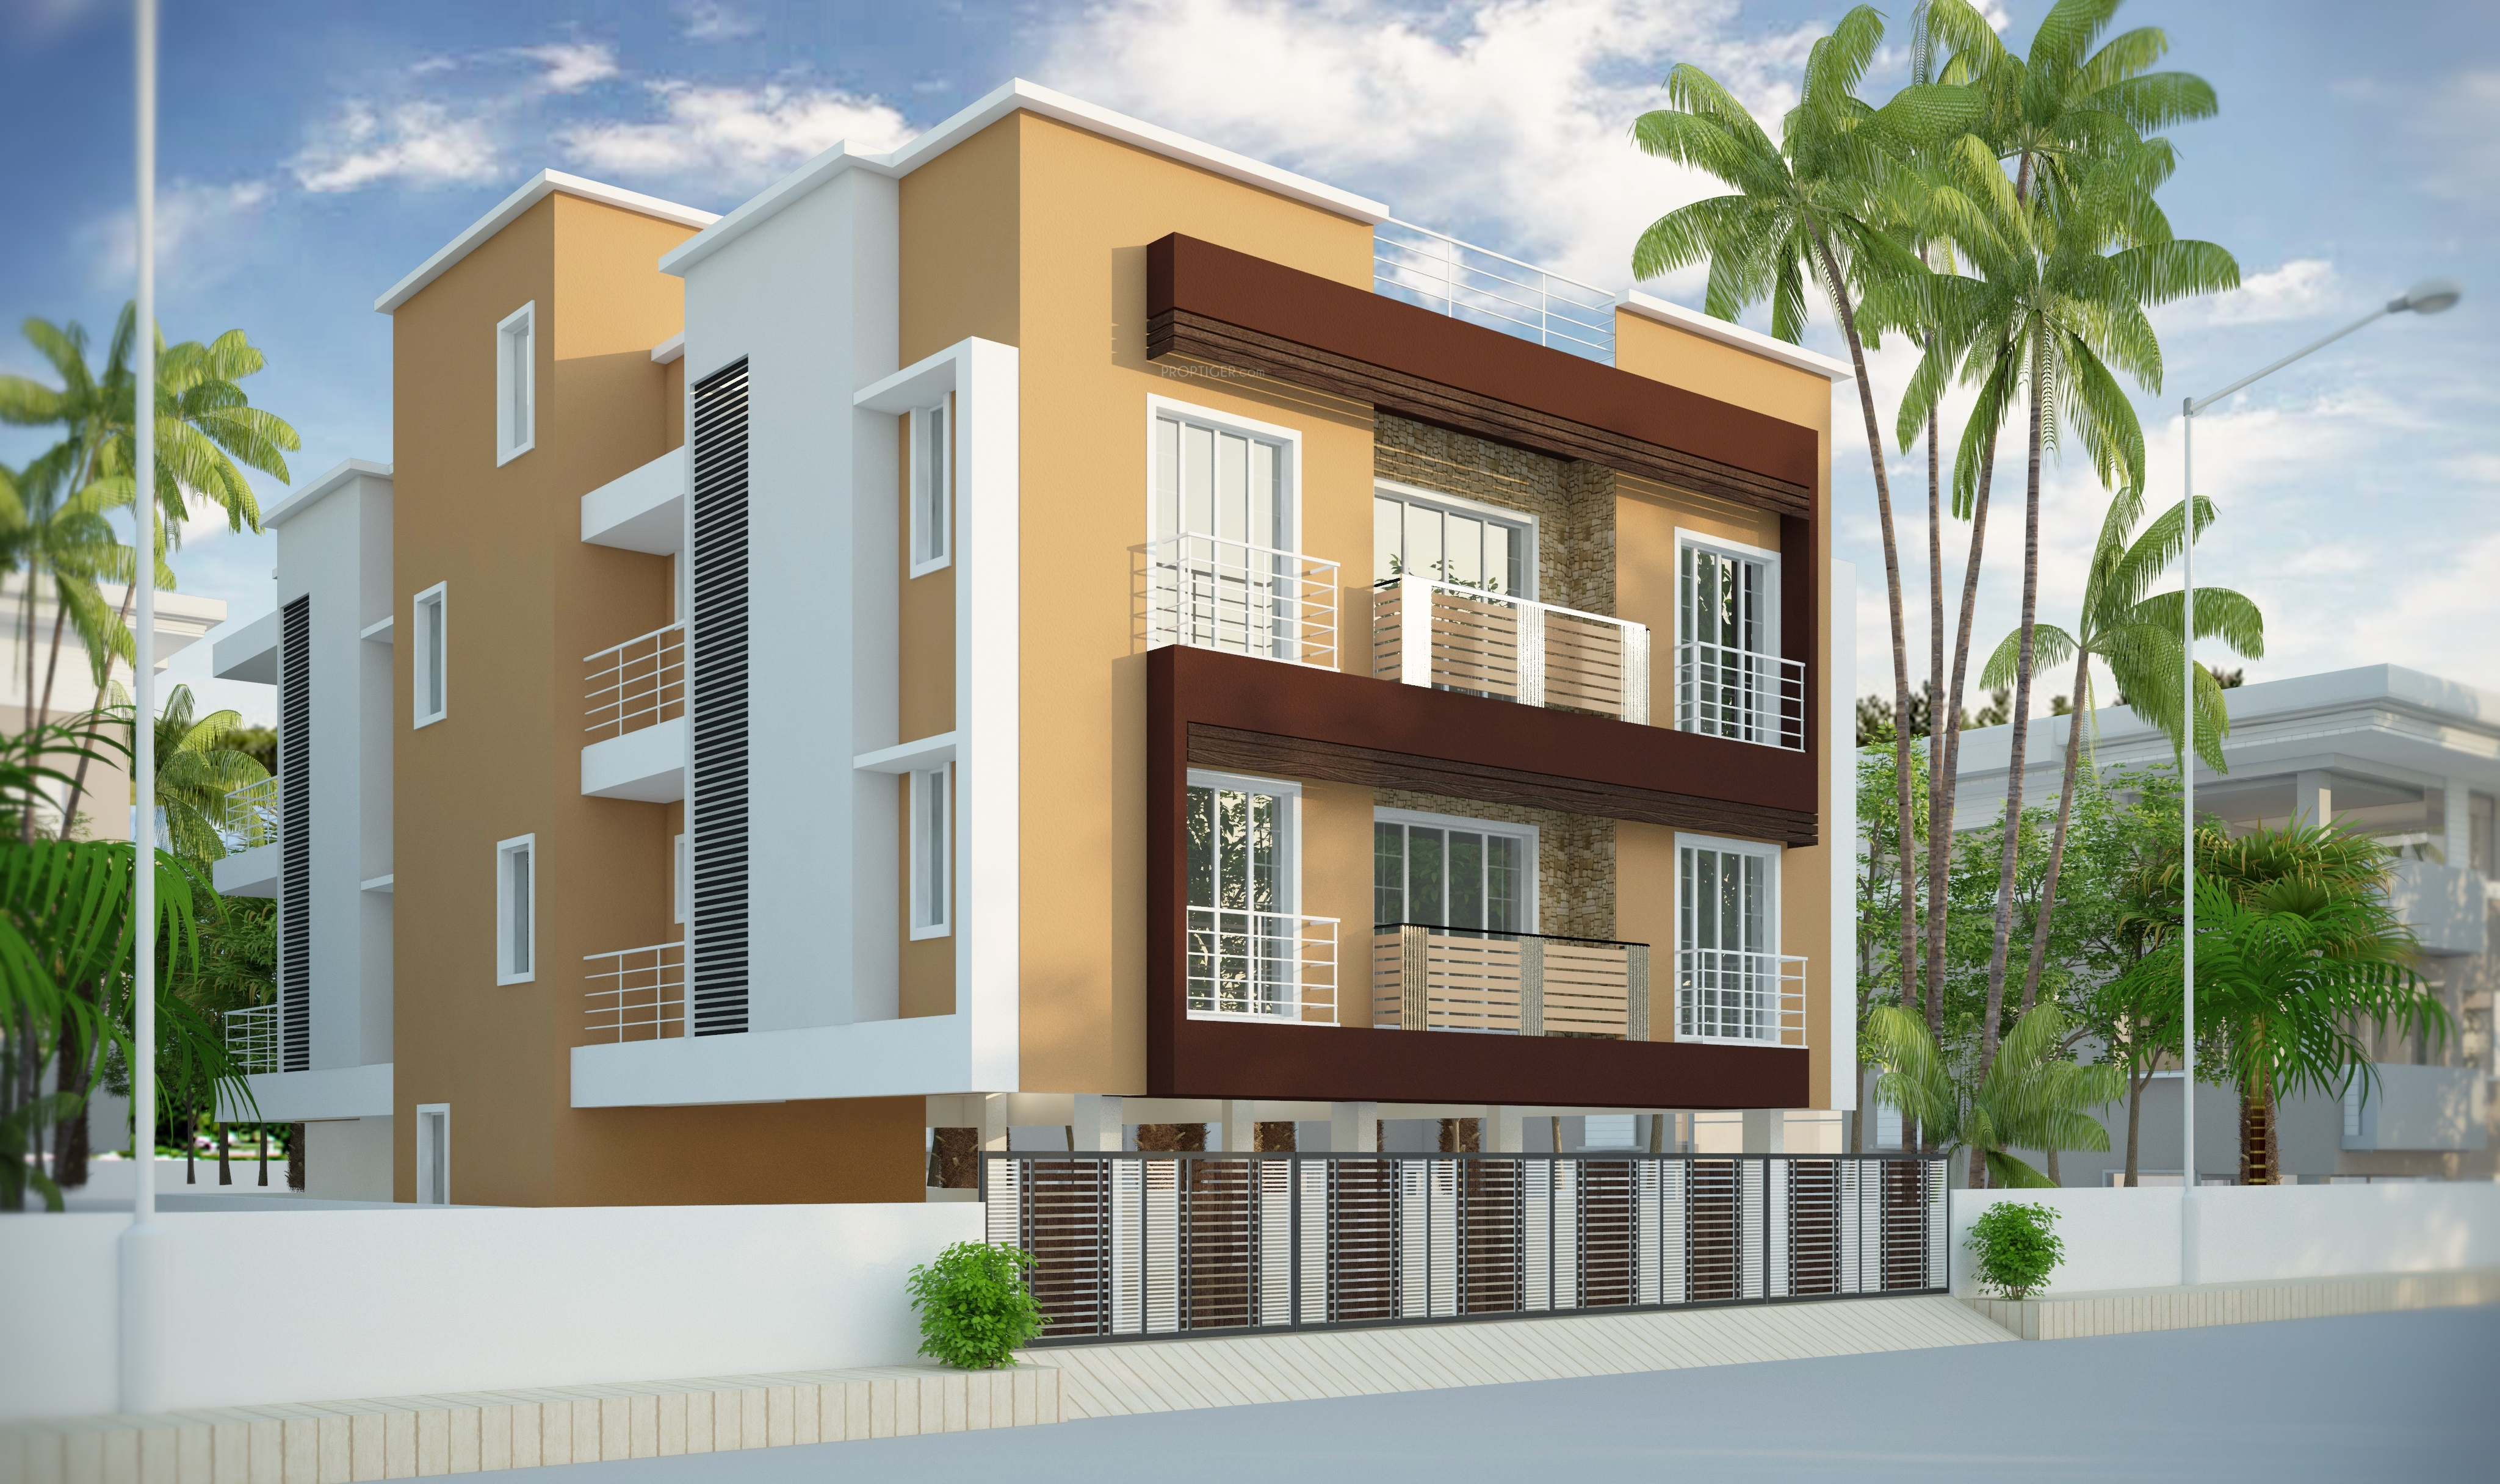 1440 Sq Ft 3 Bhk 3t Apartment For Sale In Ridhi Opera Courtyard Koyambedu Chennai